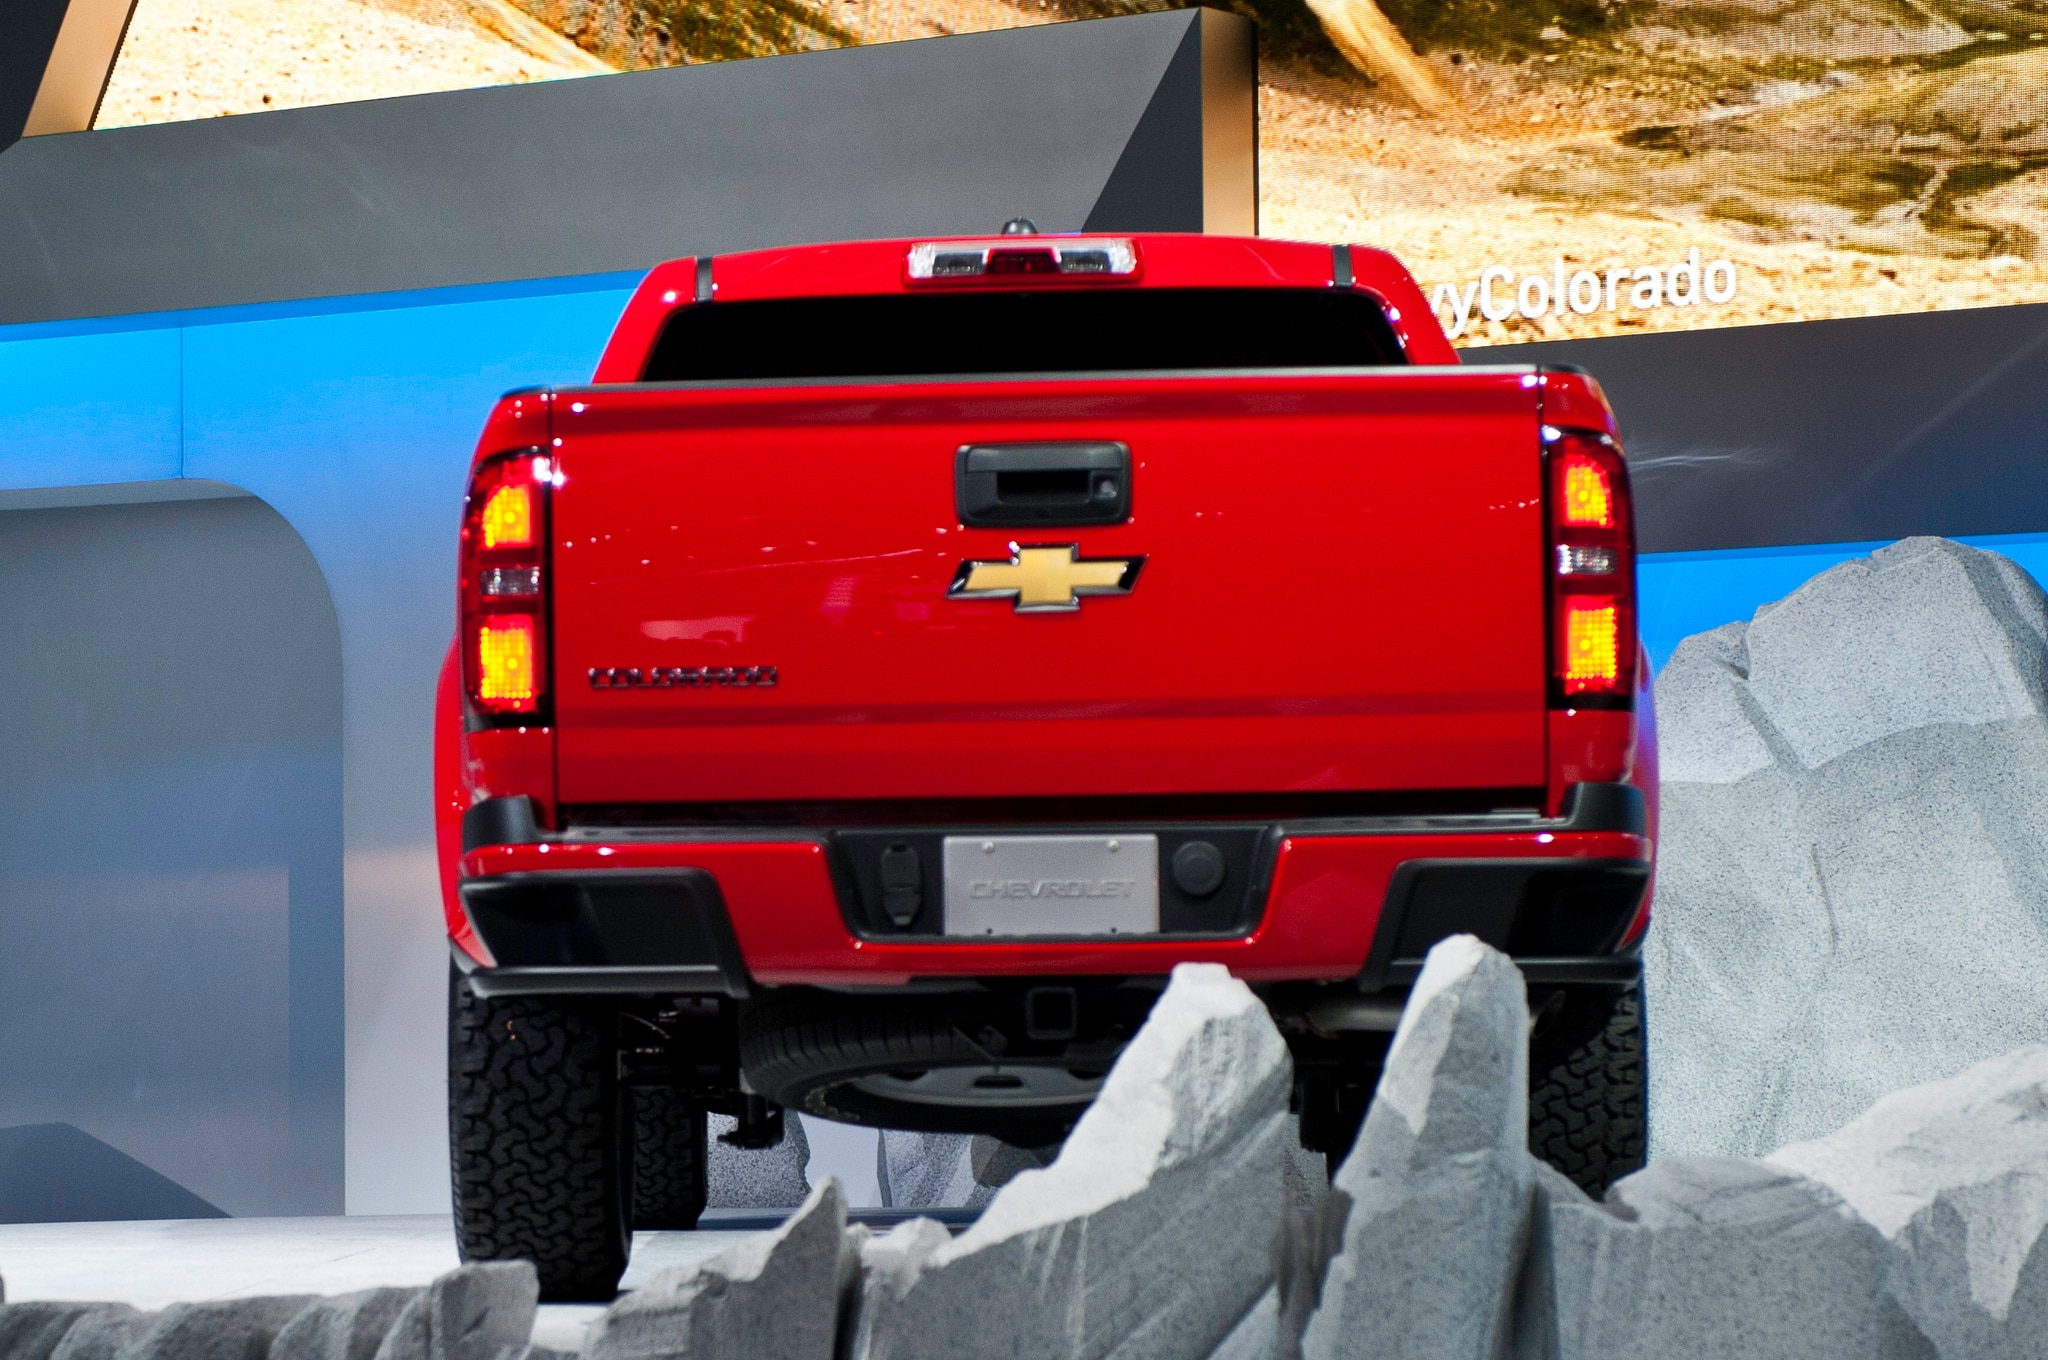 2015 Chevrolet Colorado rear profile